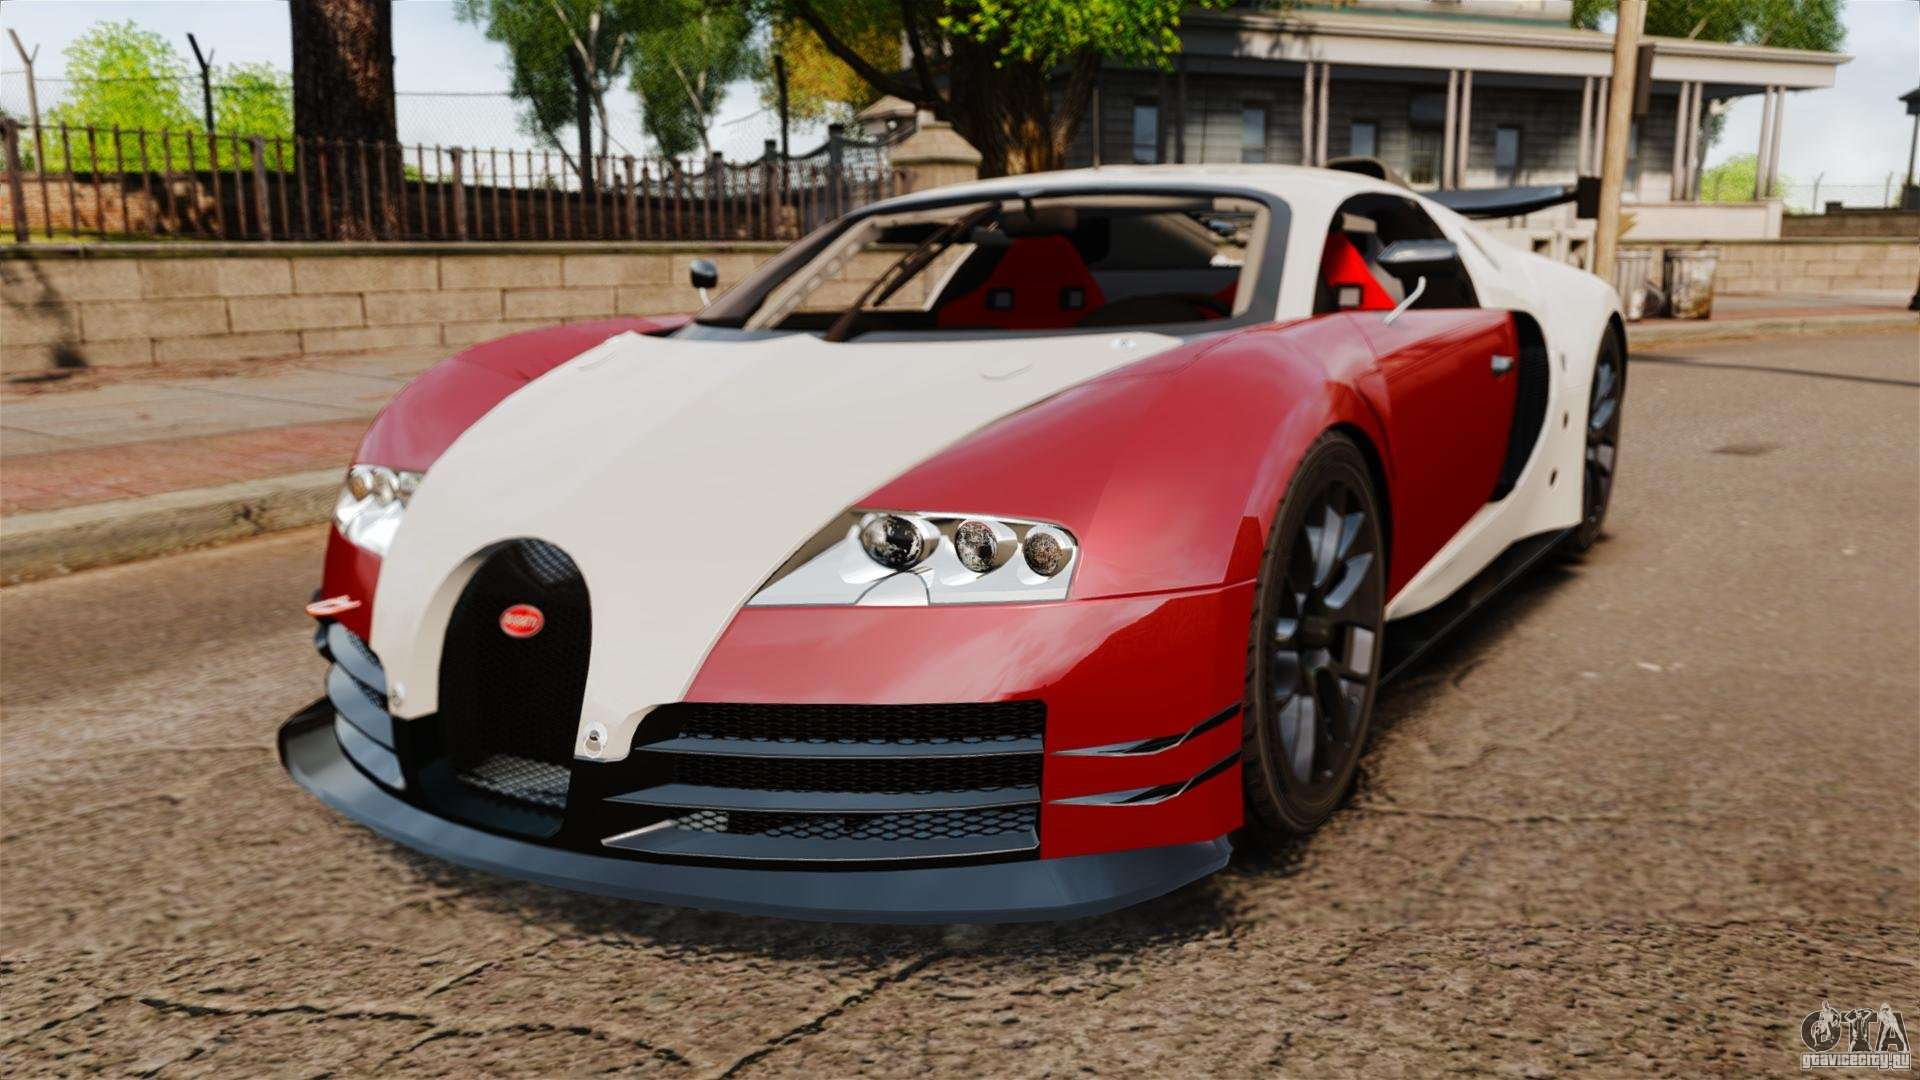 GTA V - Bugatti Veyron (Adder) SECRET CAR LOCATION! - YouTube